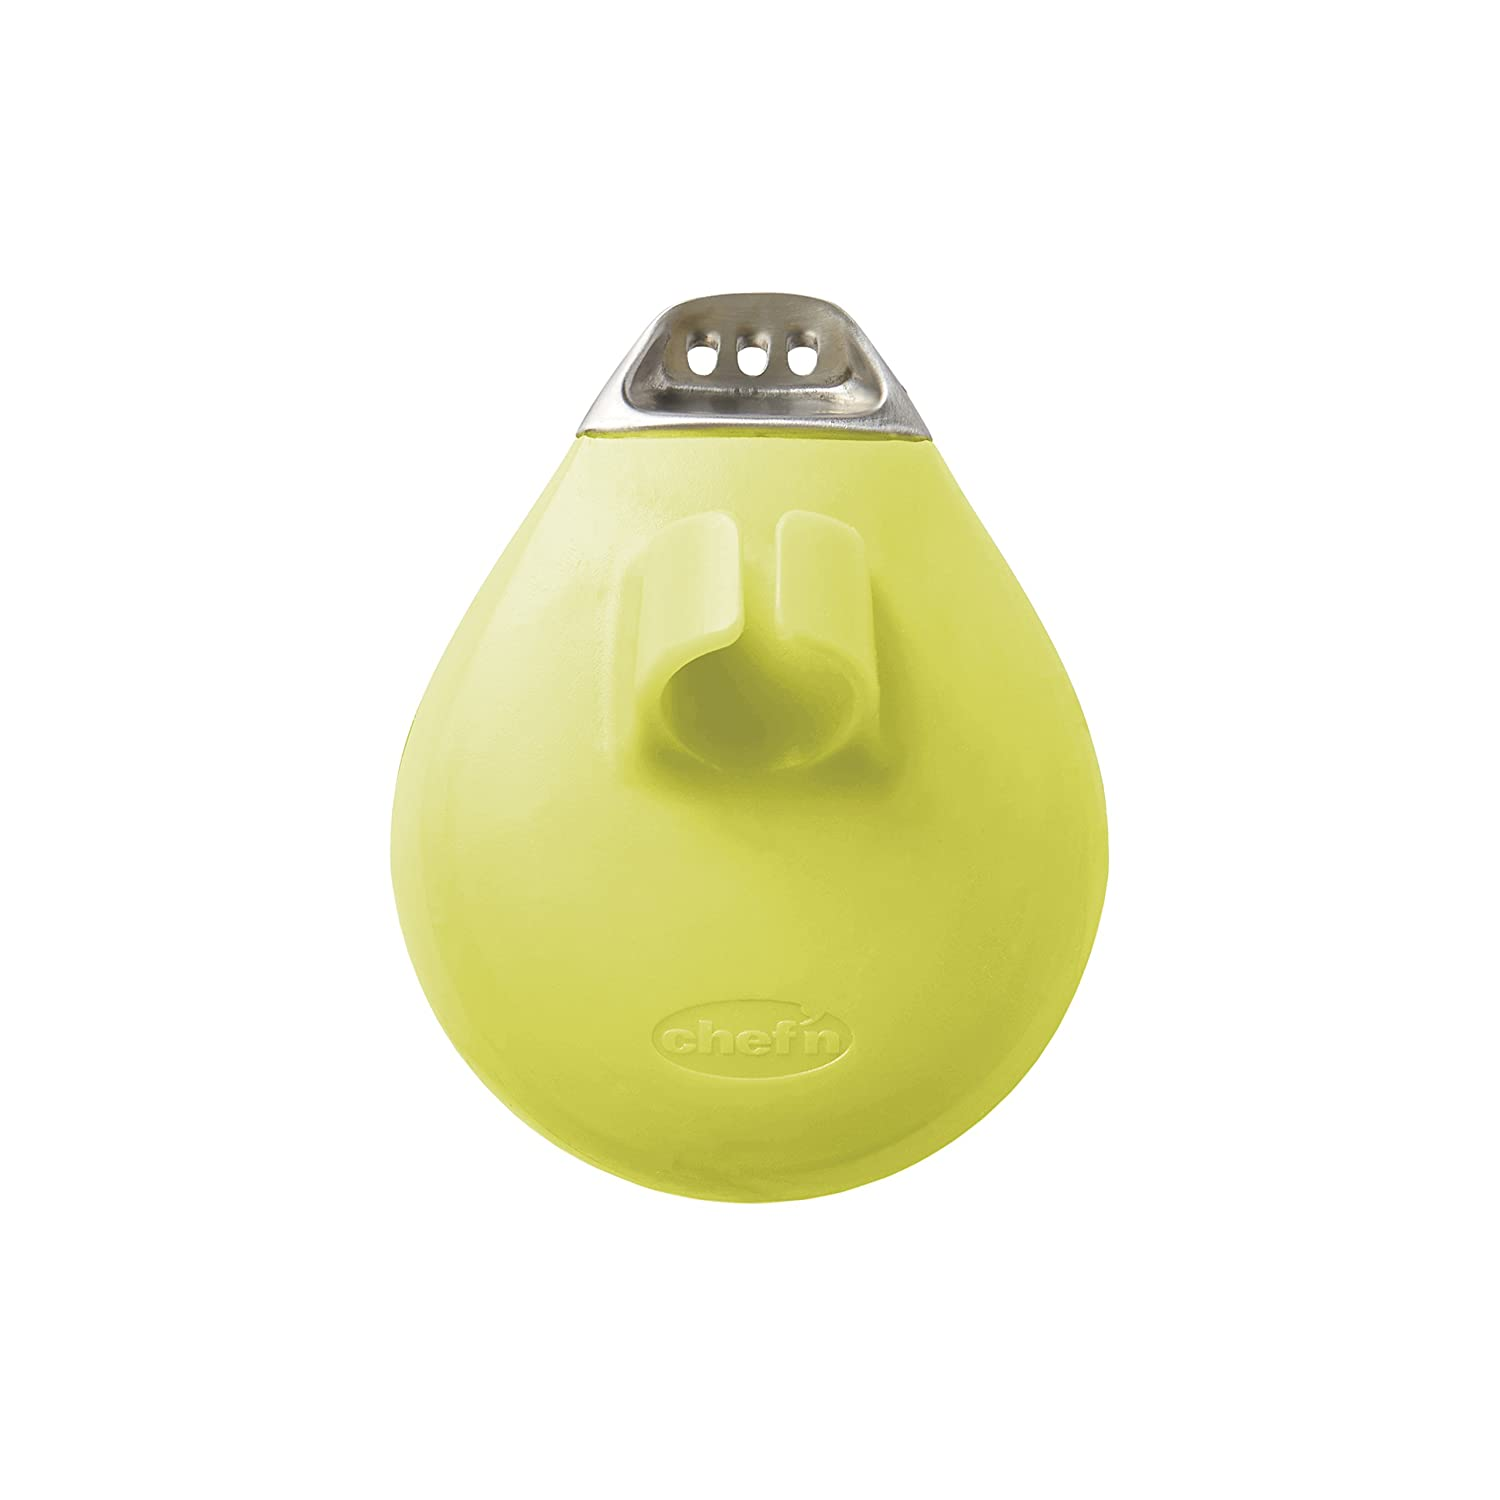 Chef'n Fruit & Vegetable Zester Lime Green Dexam 102-003-004